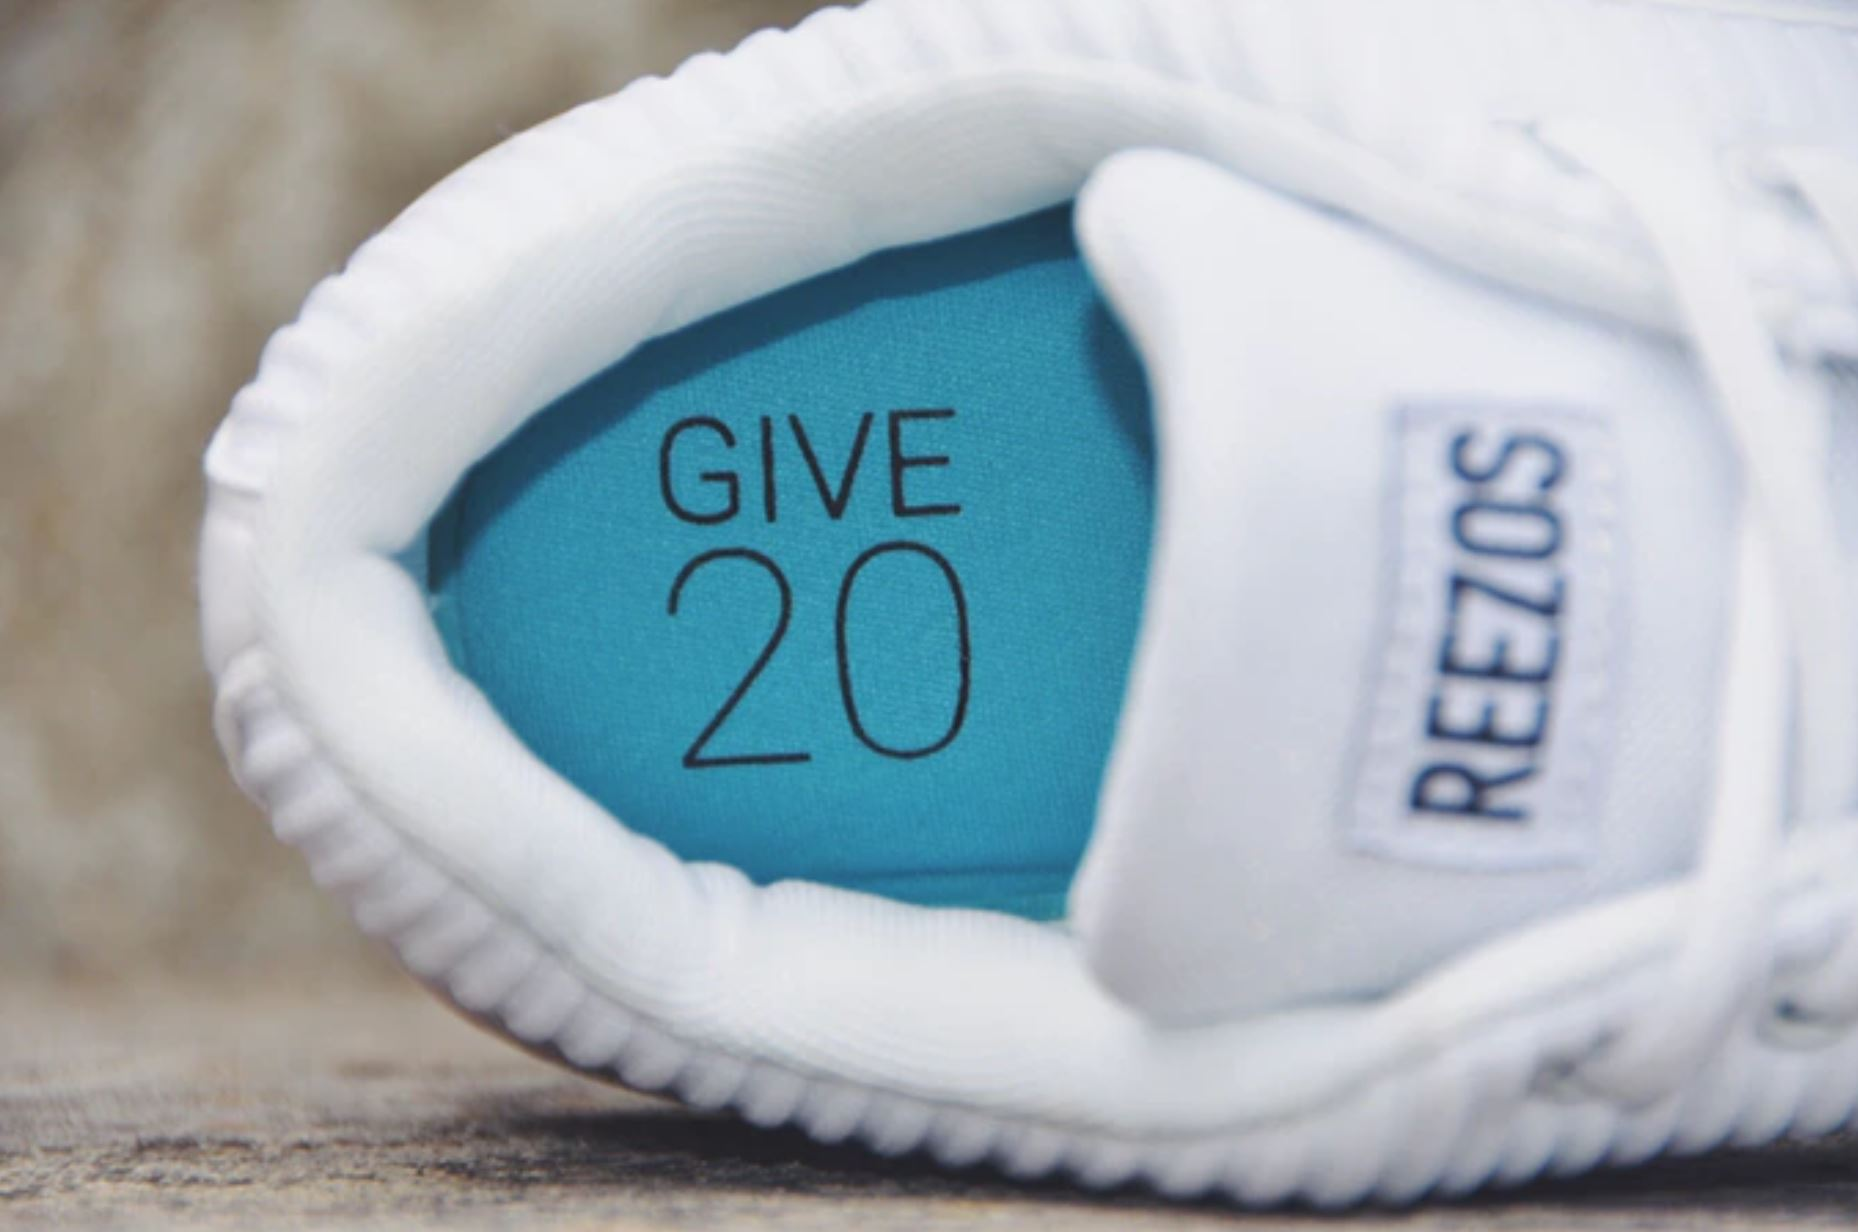 reezos one insole give 20 project